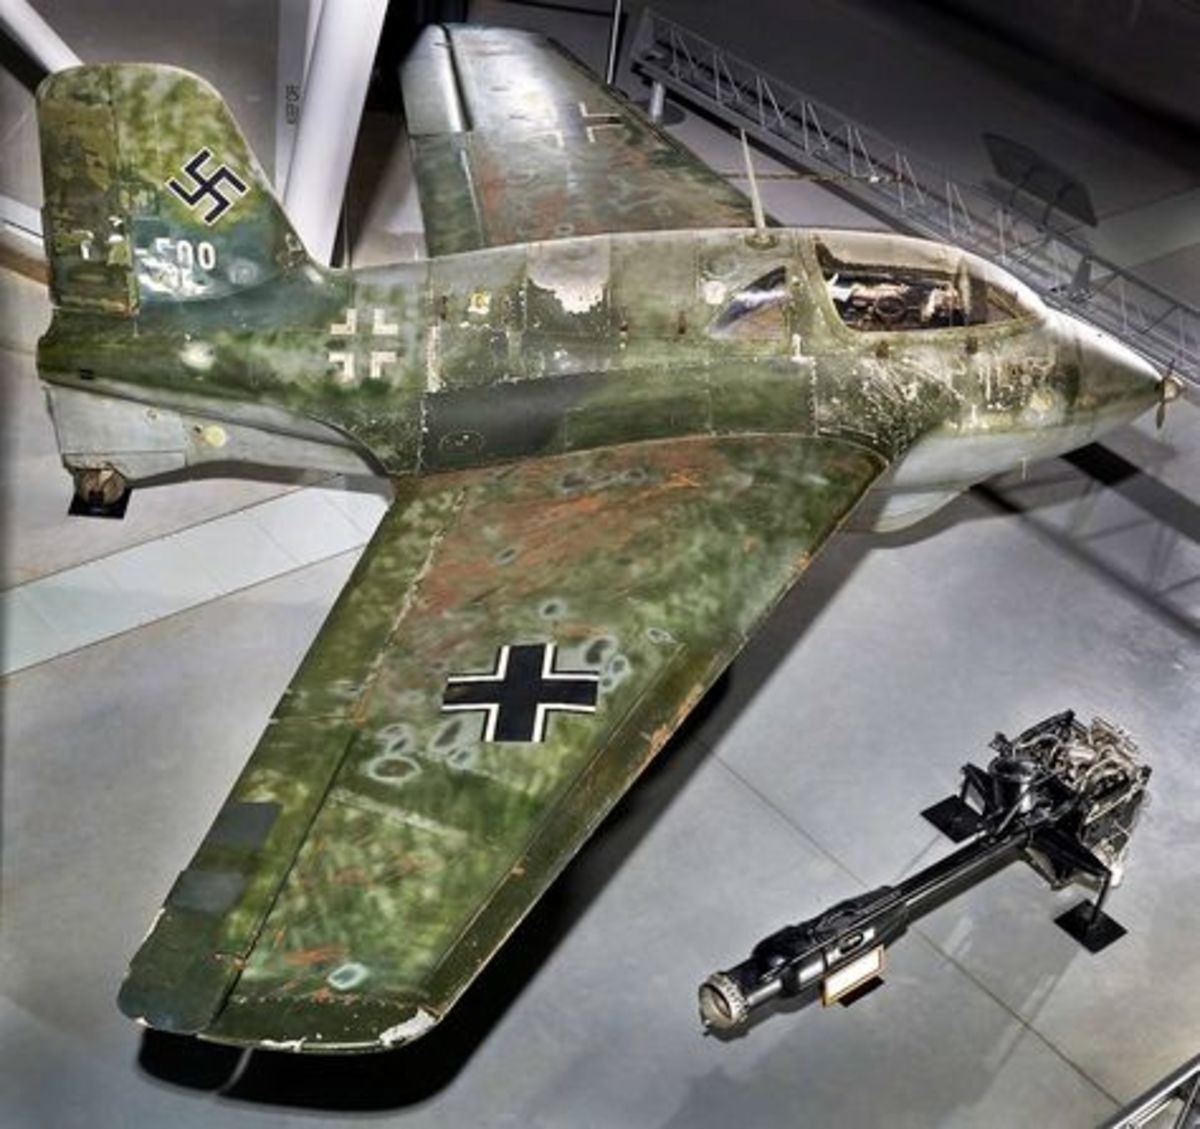 The Epic Failure of the Rocket Powered Messerschmitt Me-163 Komet